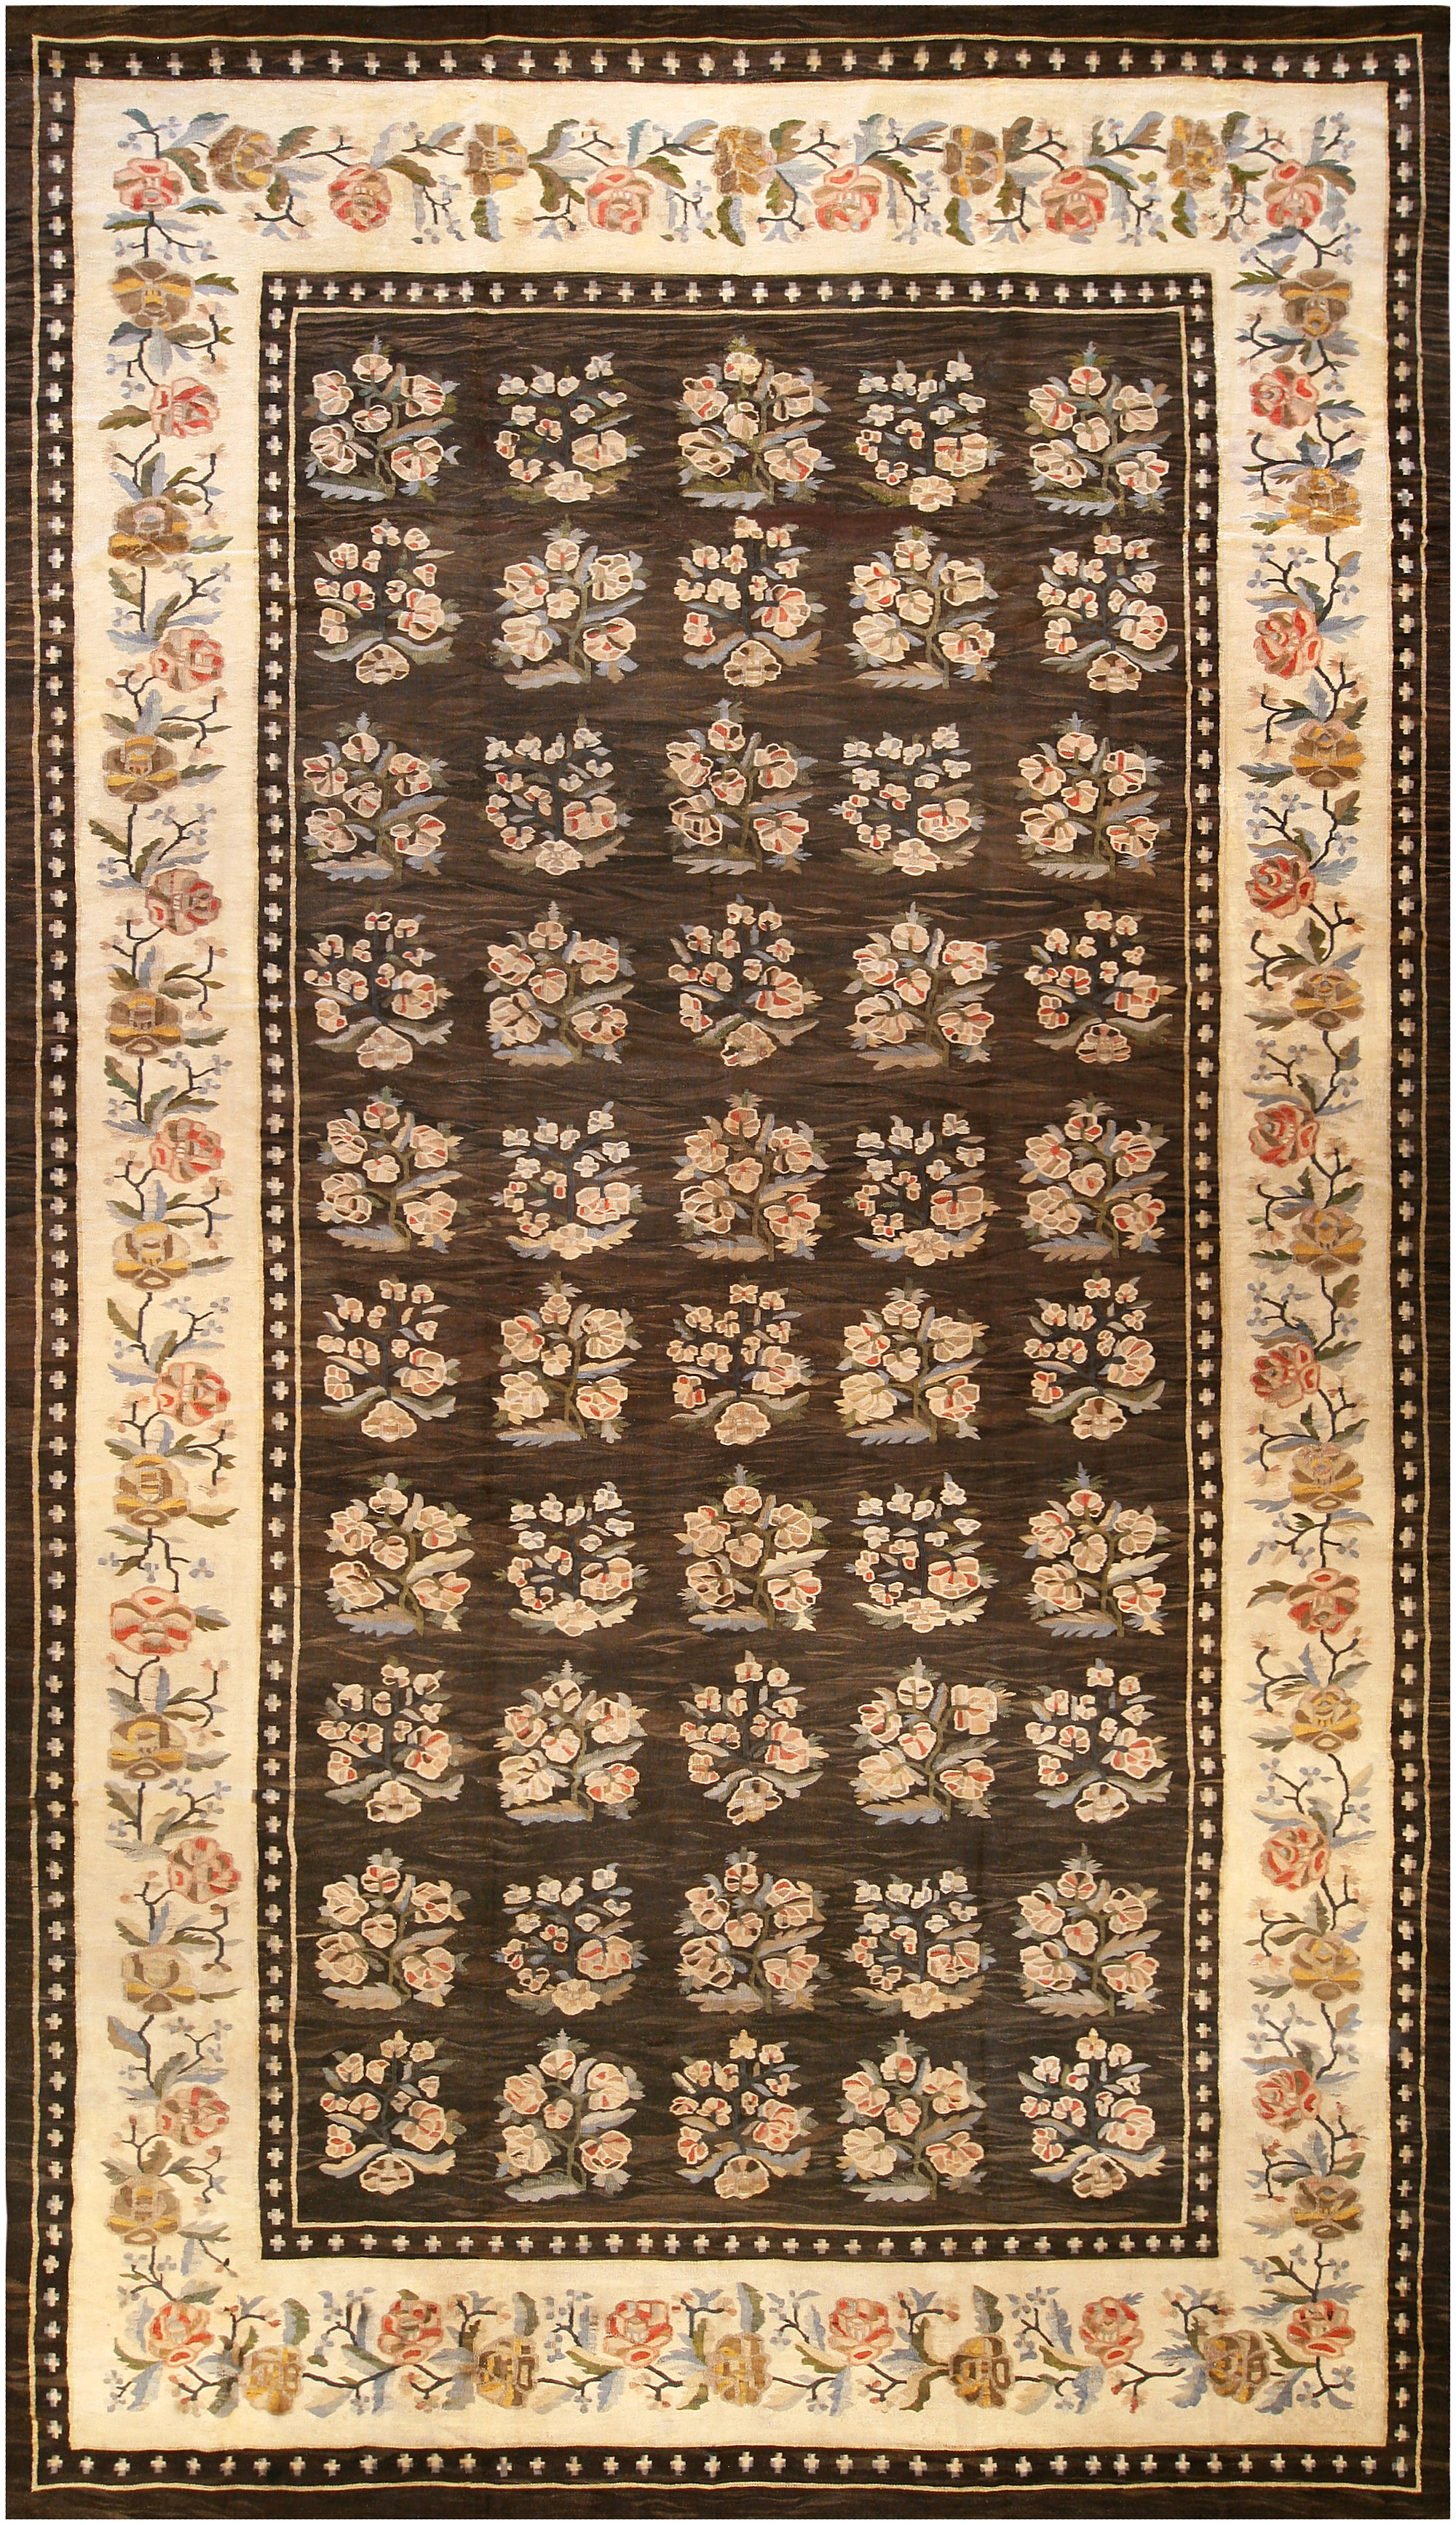 Antique Russian Bessarabian Rug Bb1441 By Doris Leslie Blau